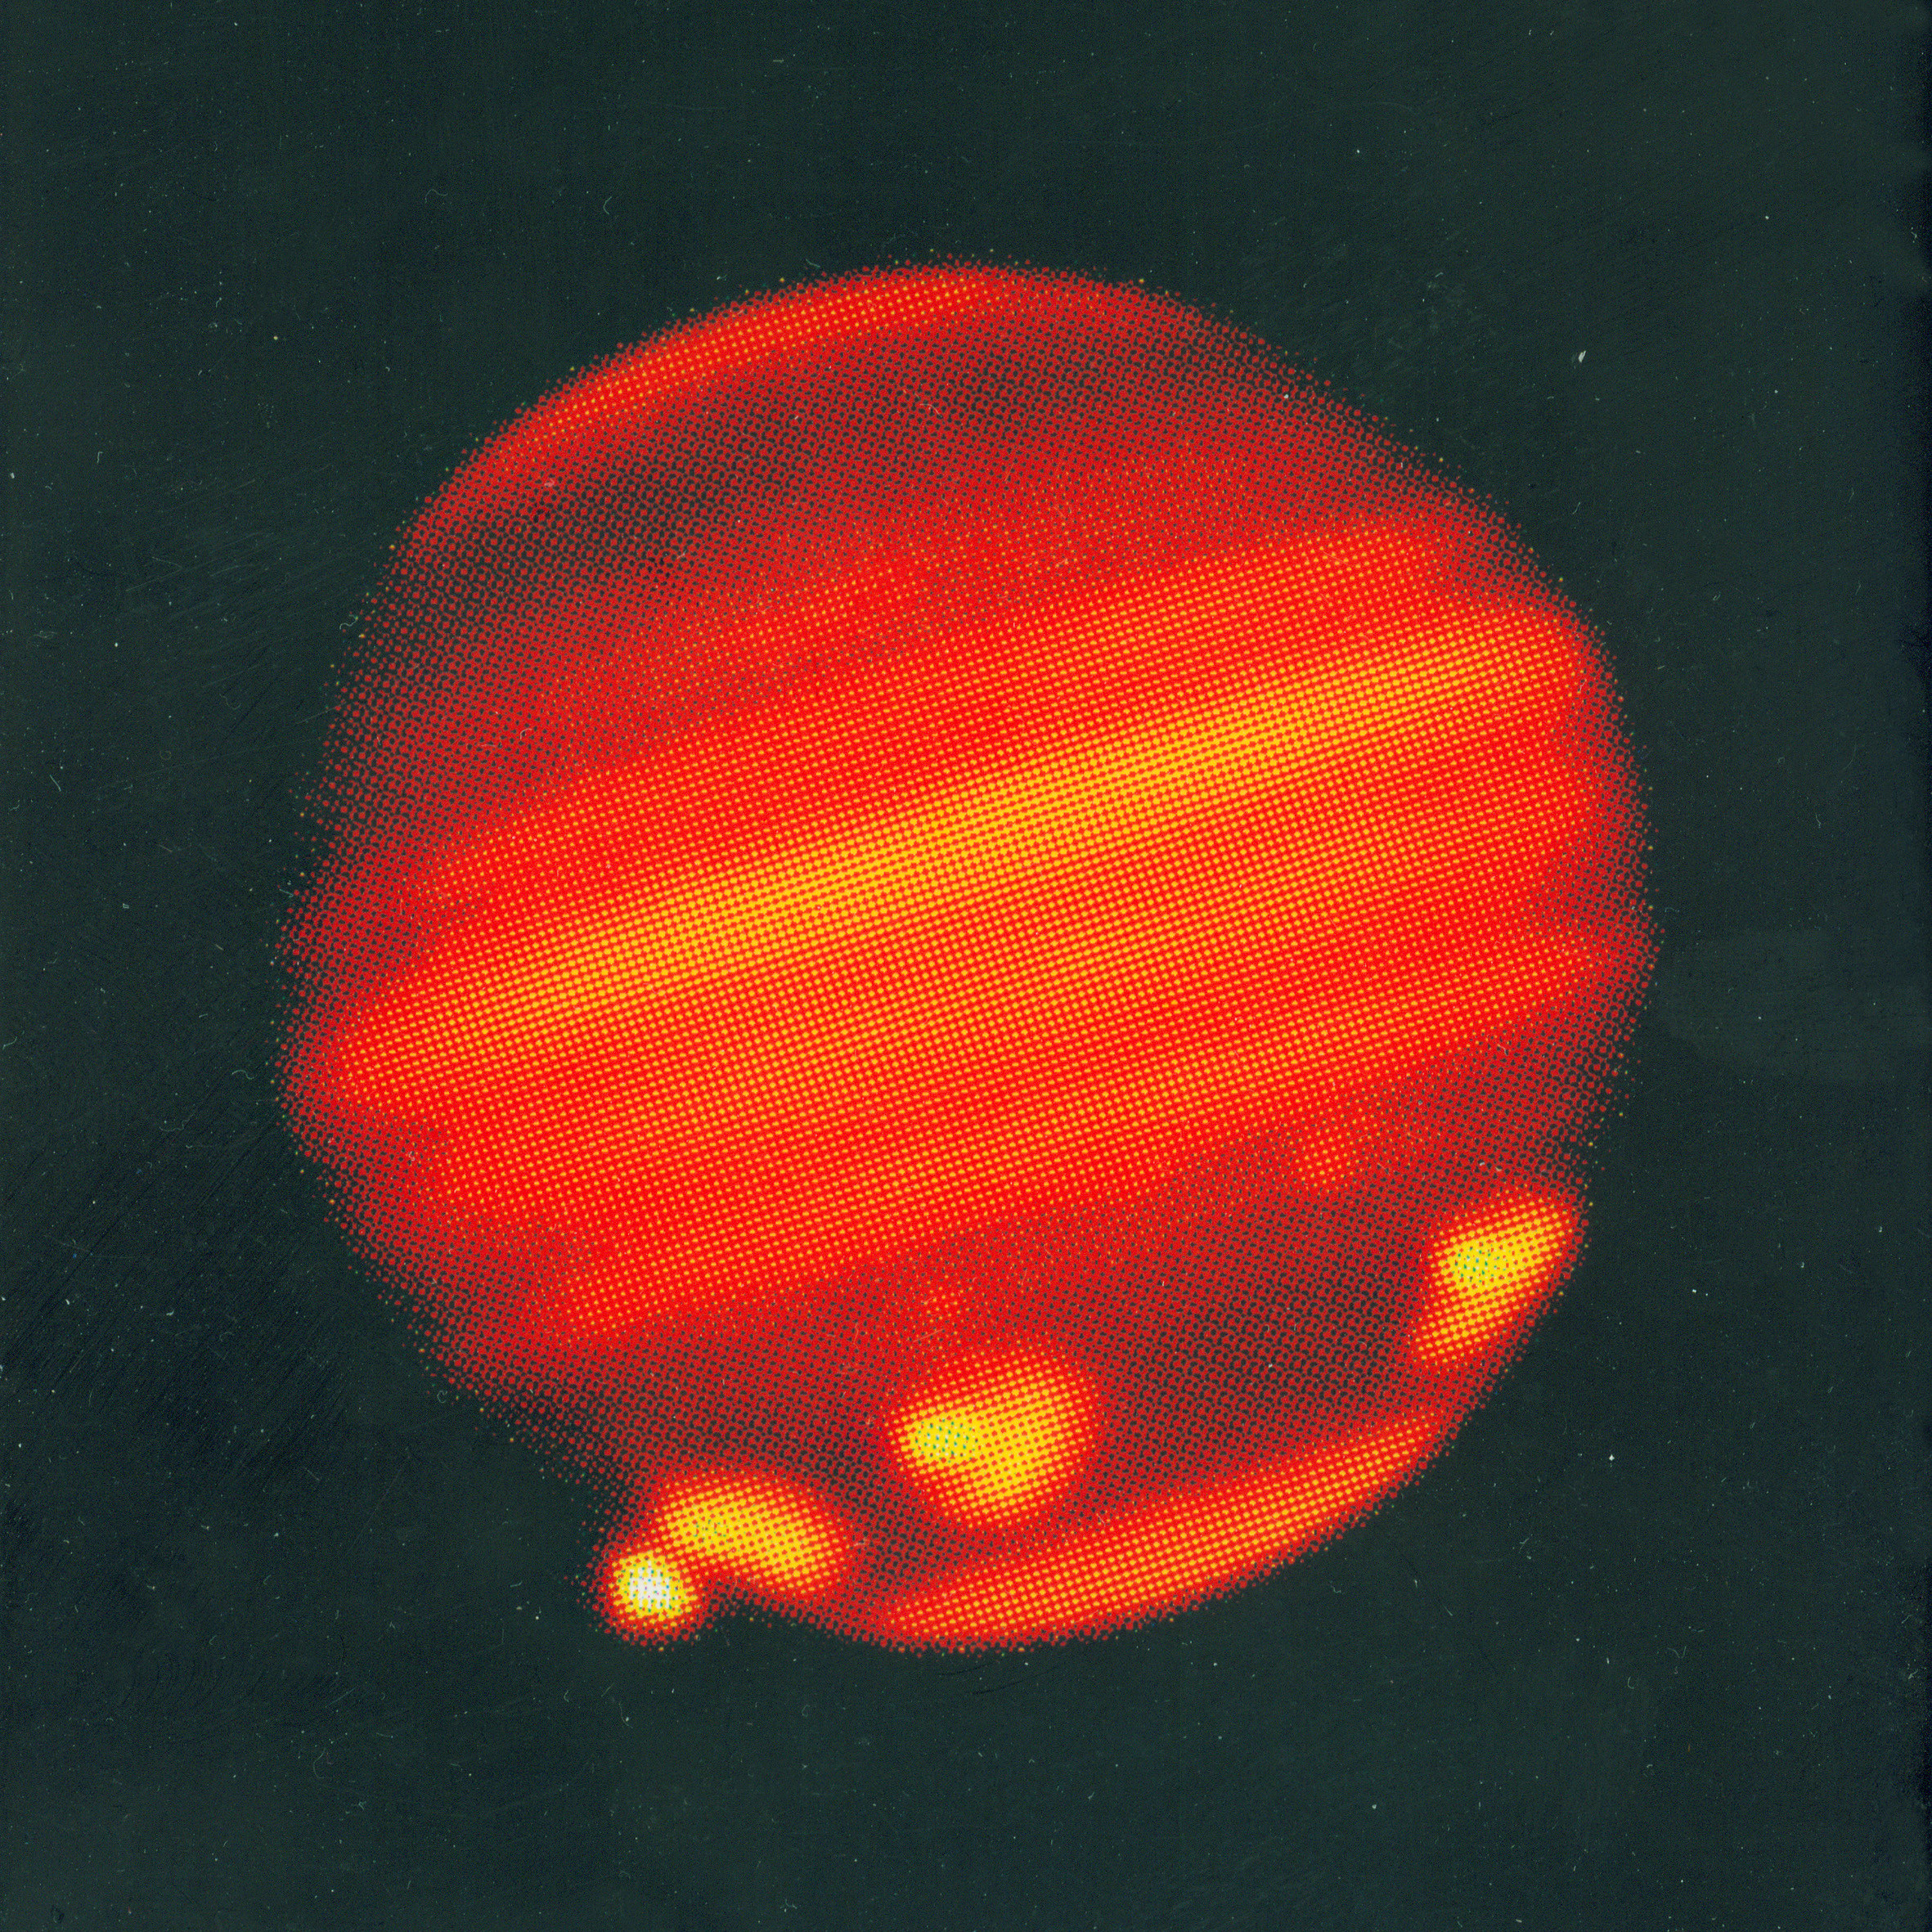 Esa Science Amp Technology Jupiter After The Impact Of